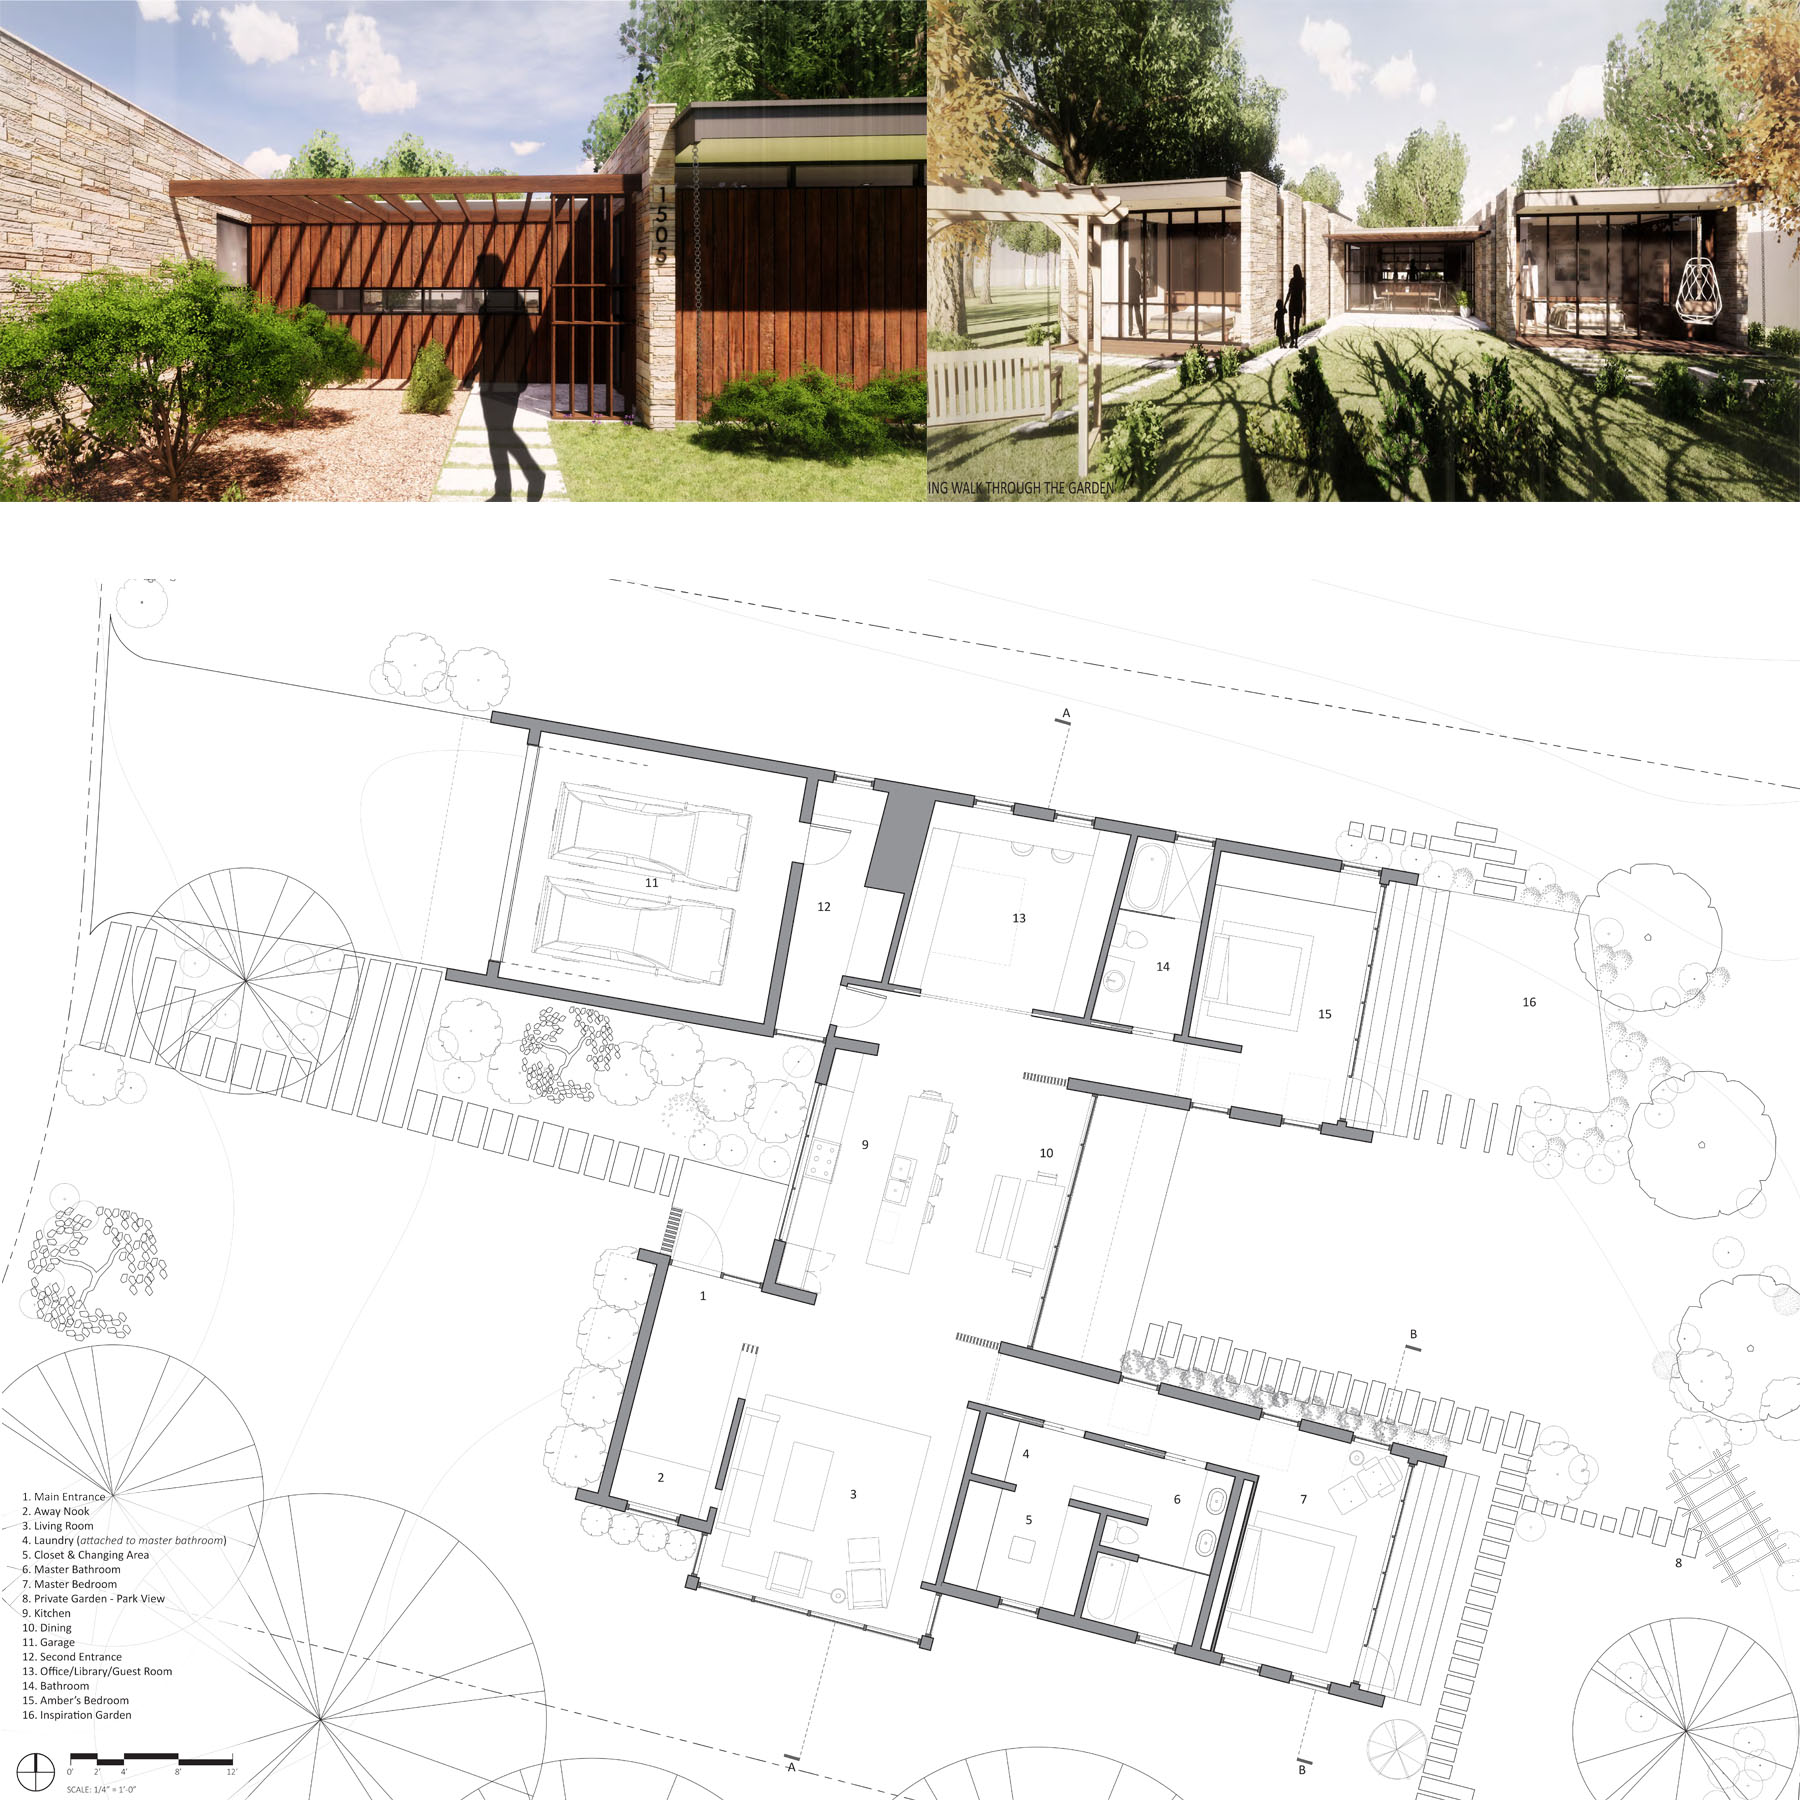 Exterior rendering and floor plan of house